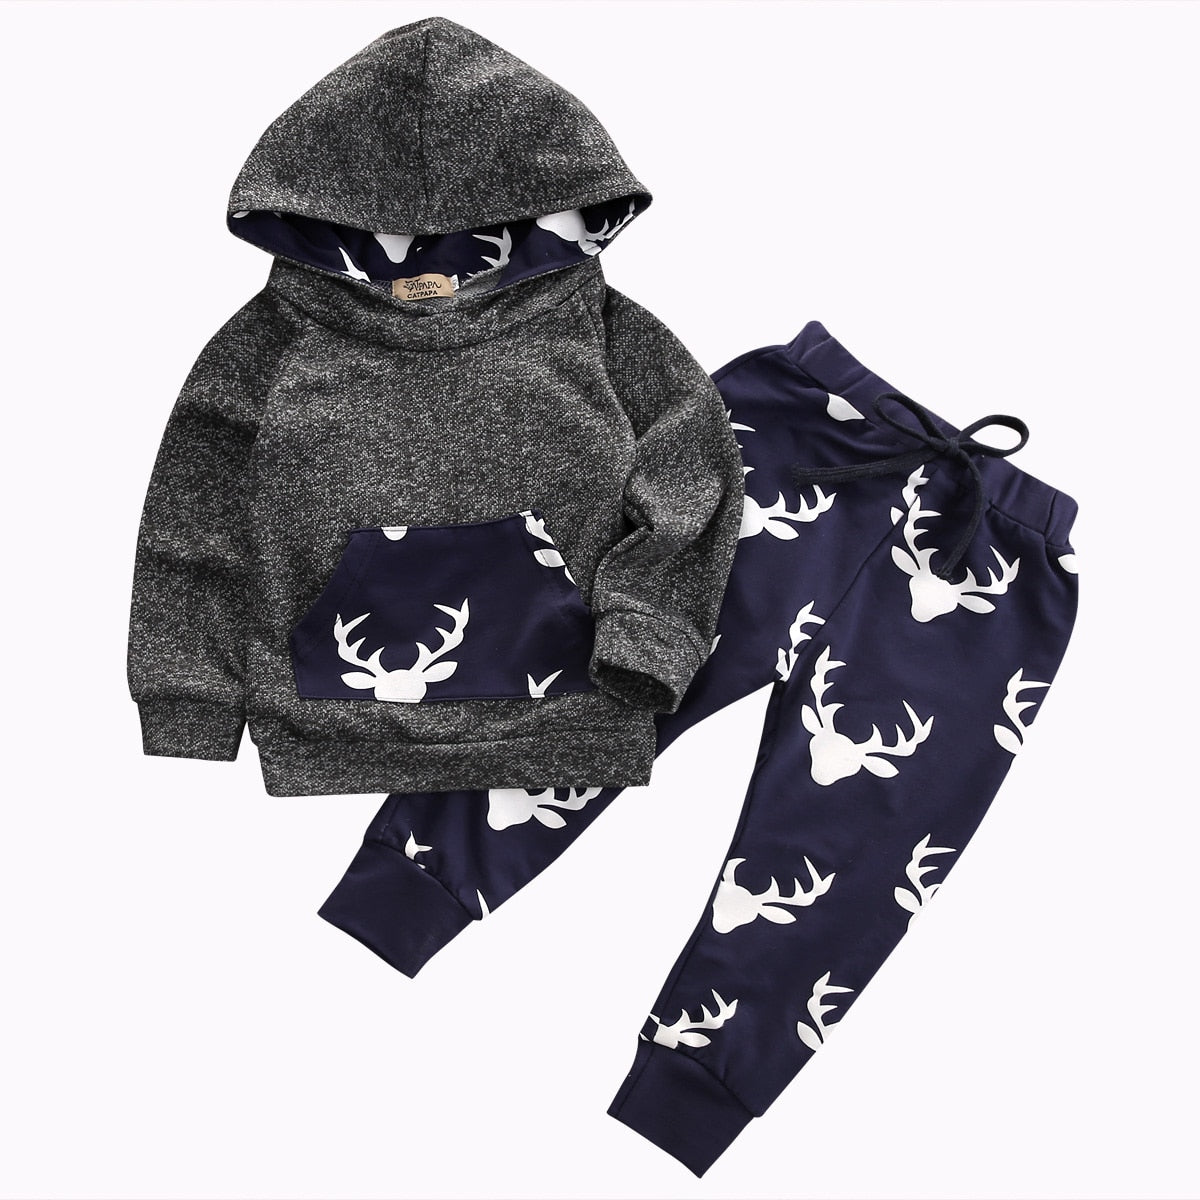 0-24M Newborn Baby Boys Girls Clothes Deer Hooded Top Pant 2pcs Infant Bebek Kids Clothing Set-eosegal